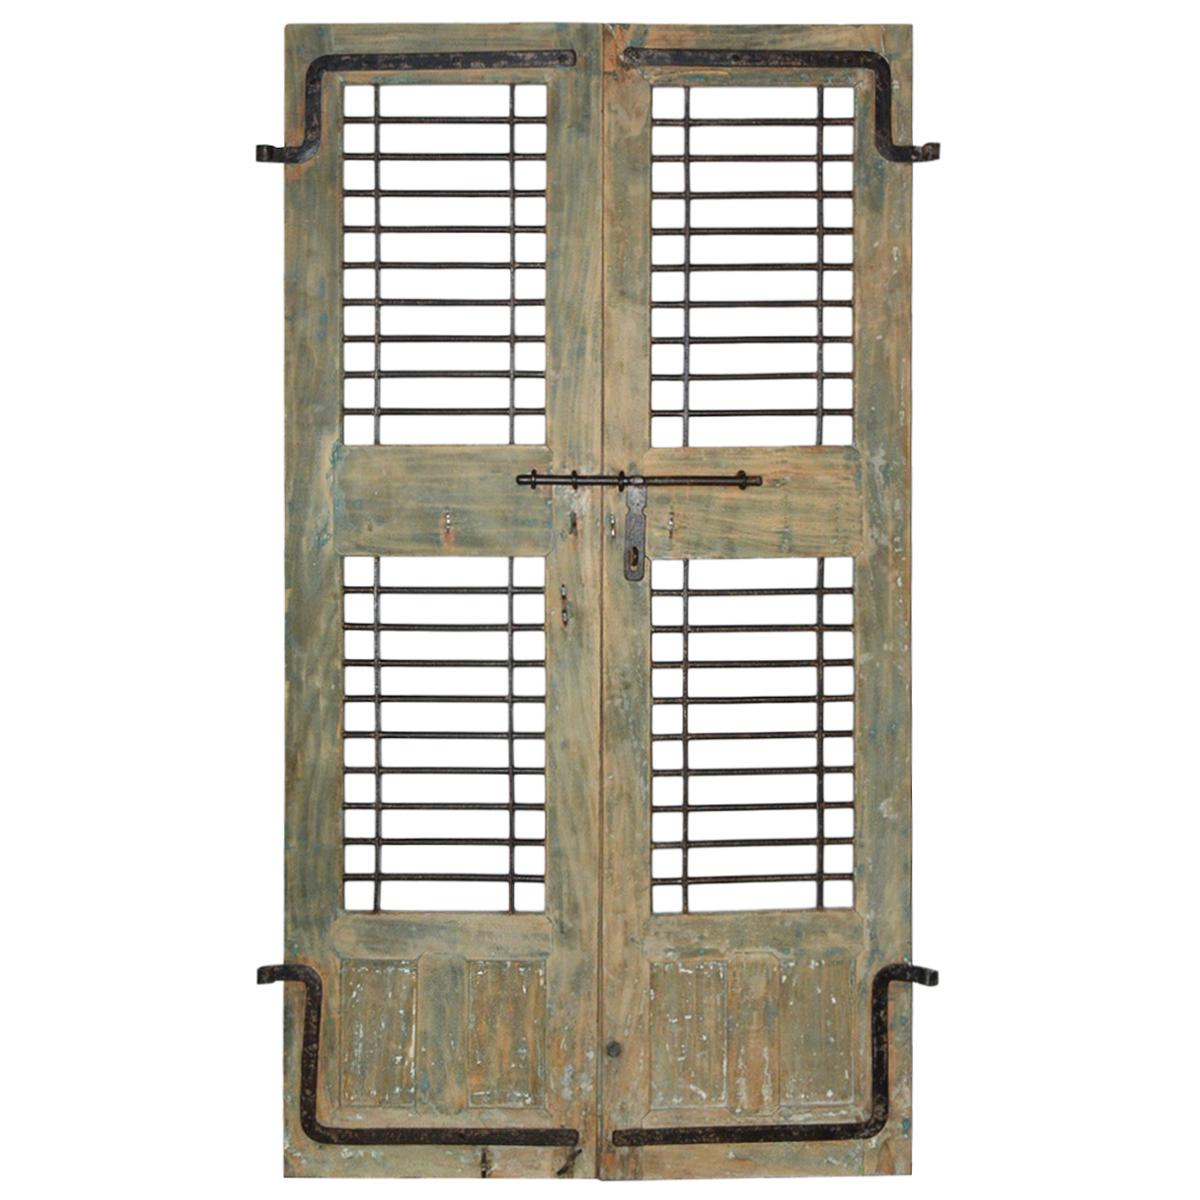 Pair of Antique Doors or Shutters from India